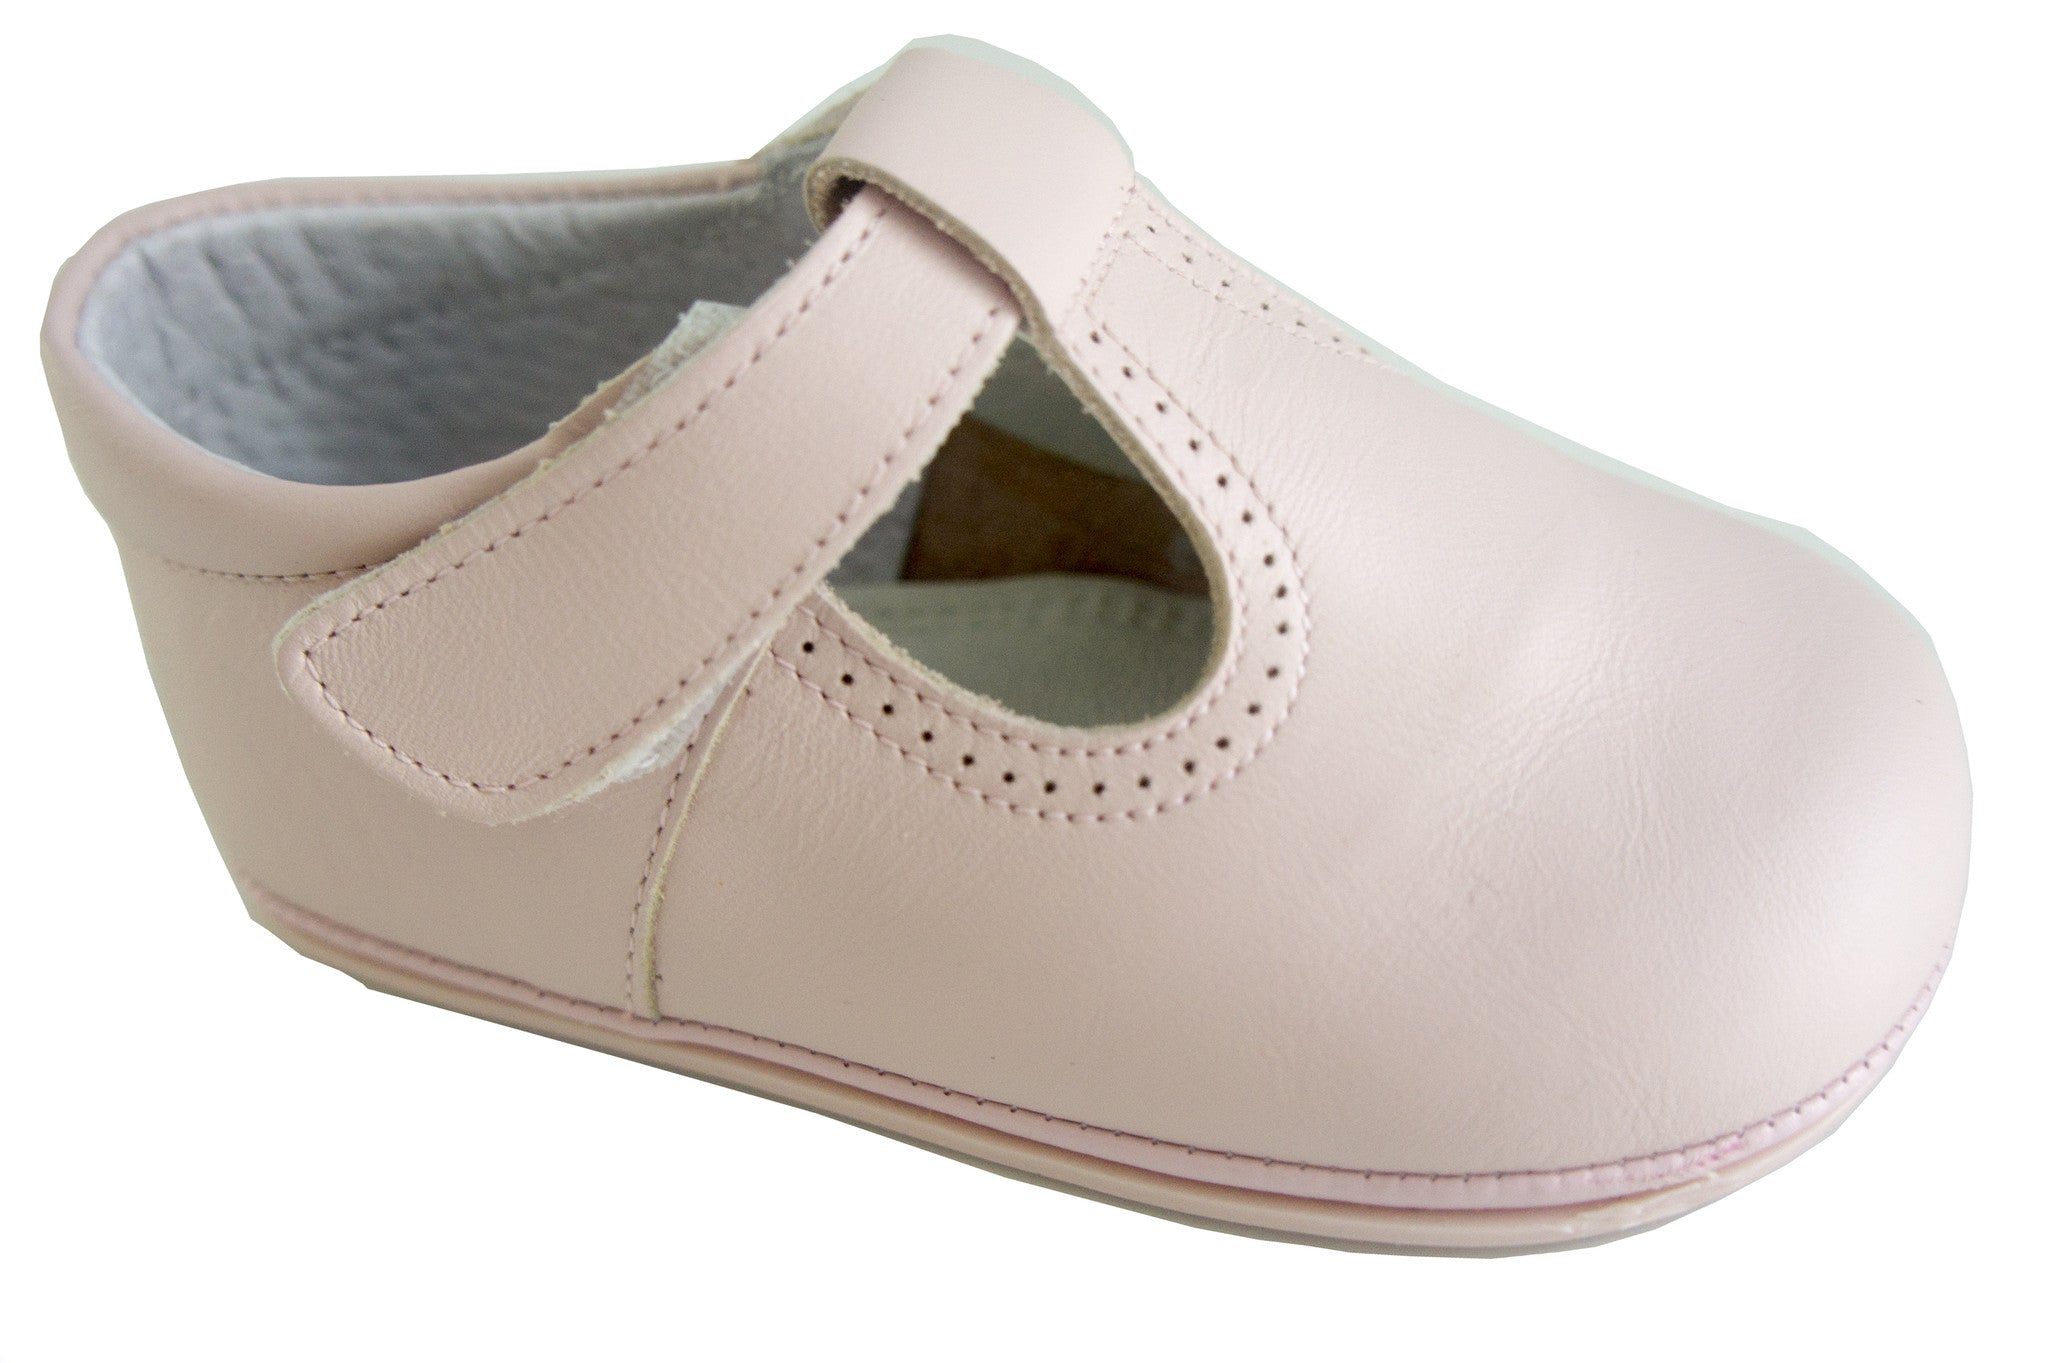 Classic Pink leather T-Strap Mary Janes for Girls Patucos Classic Shoes for Baby and Infant